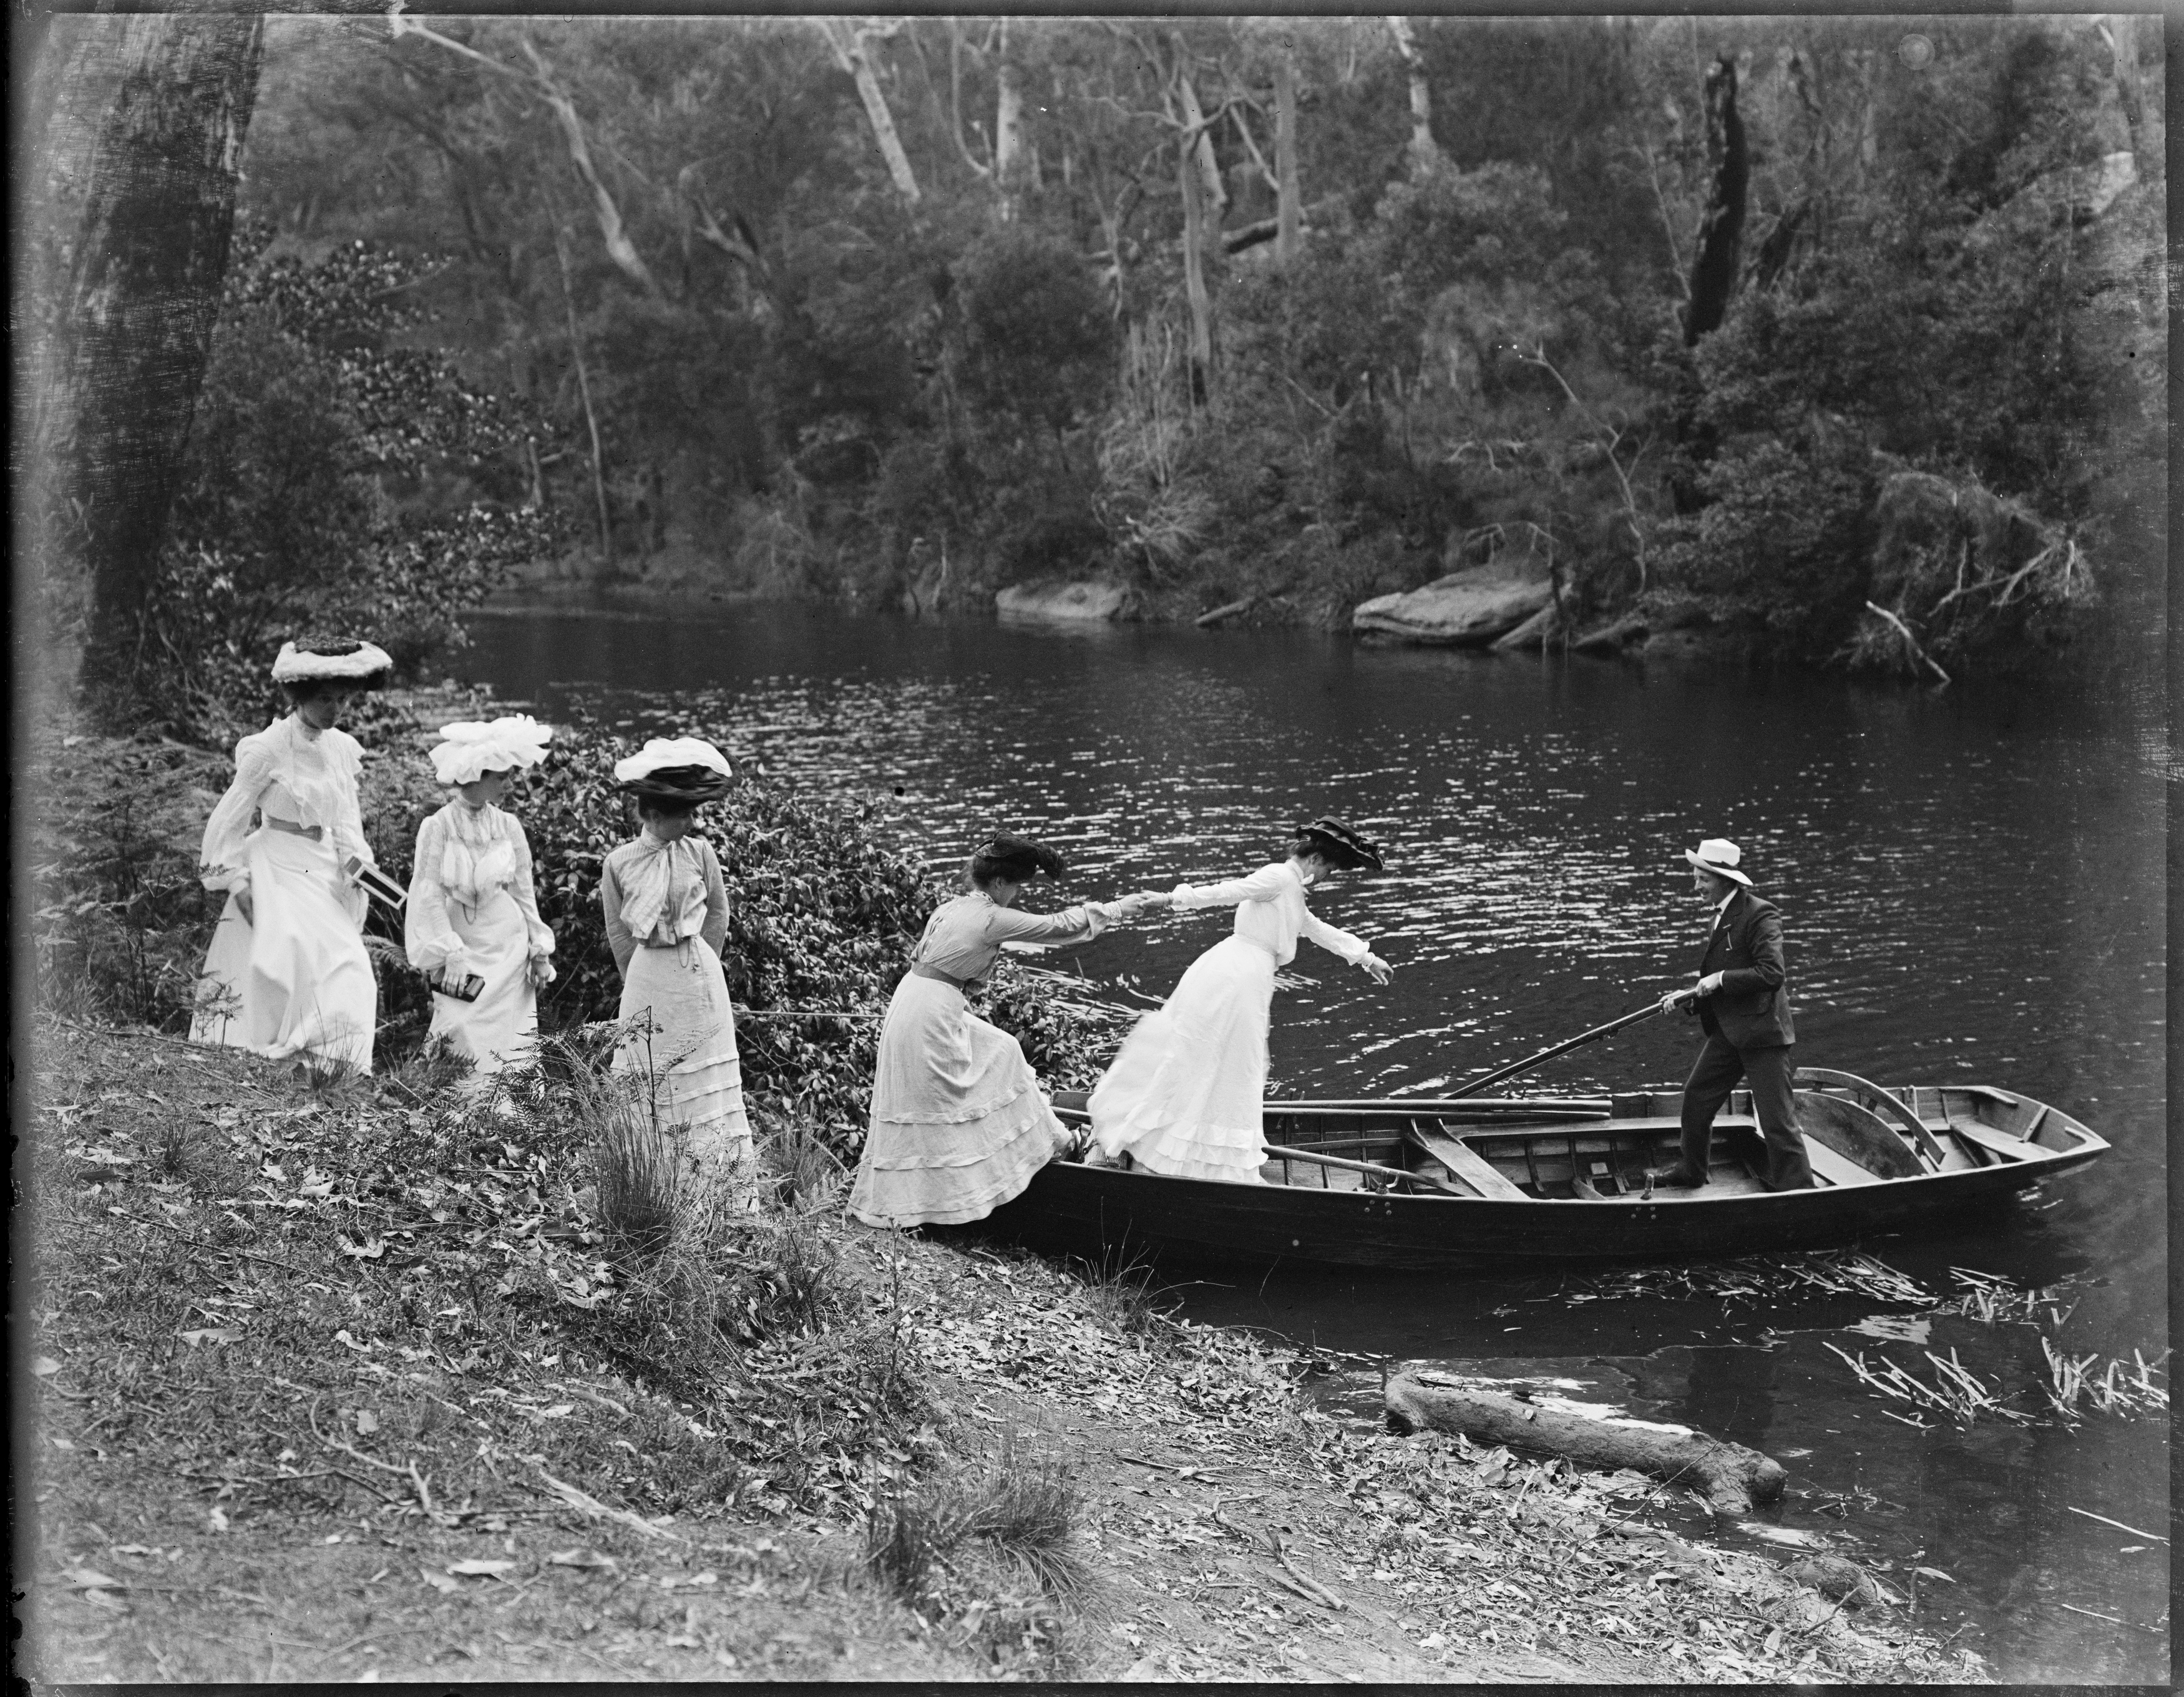 Box 04: Glass negatives of Sydney and Manly areas, ca 1890-1910